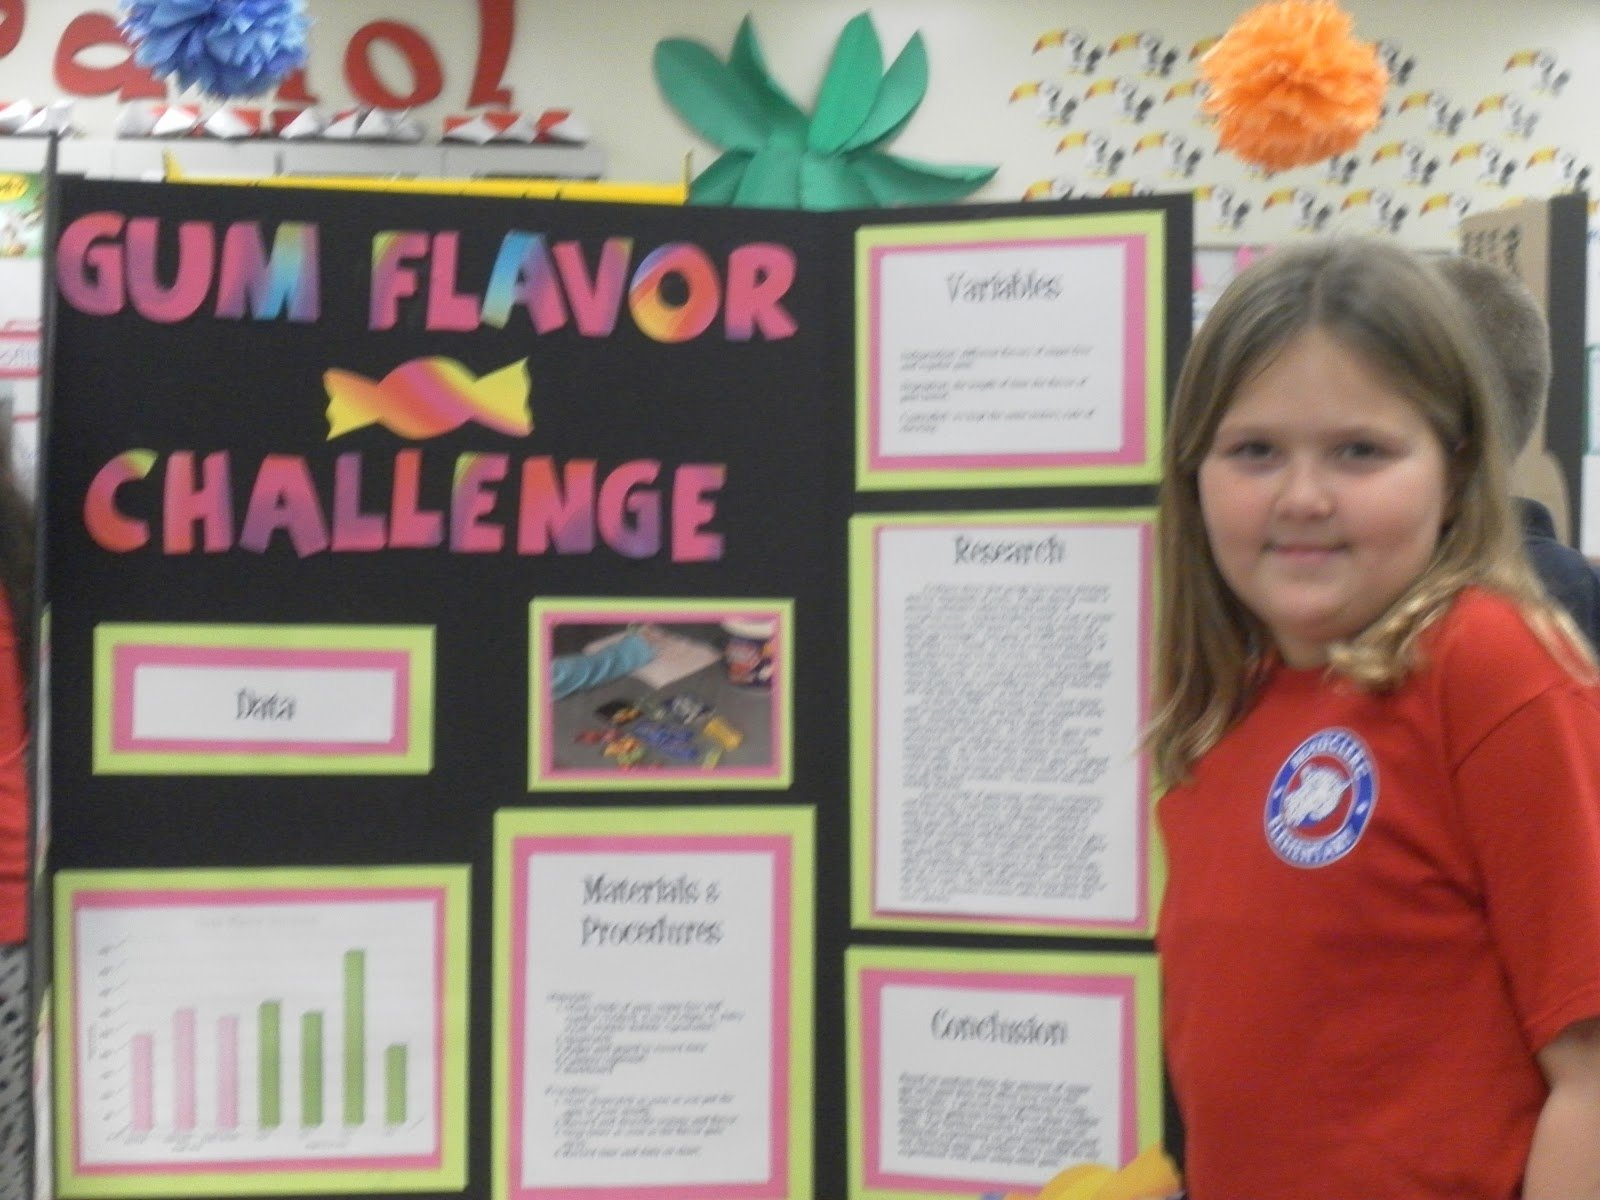 10 Famous Science Fair Projects Ideas For 4Th Graders cool science fair projects for 4th graders college paper writing 2